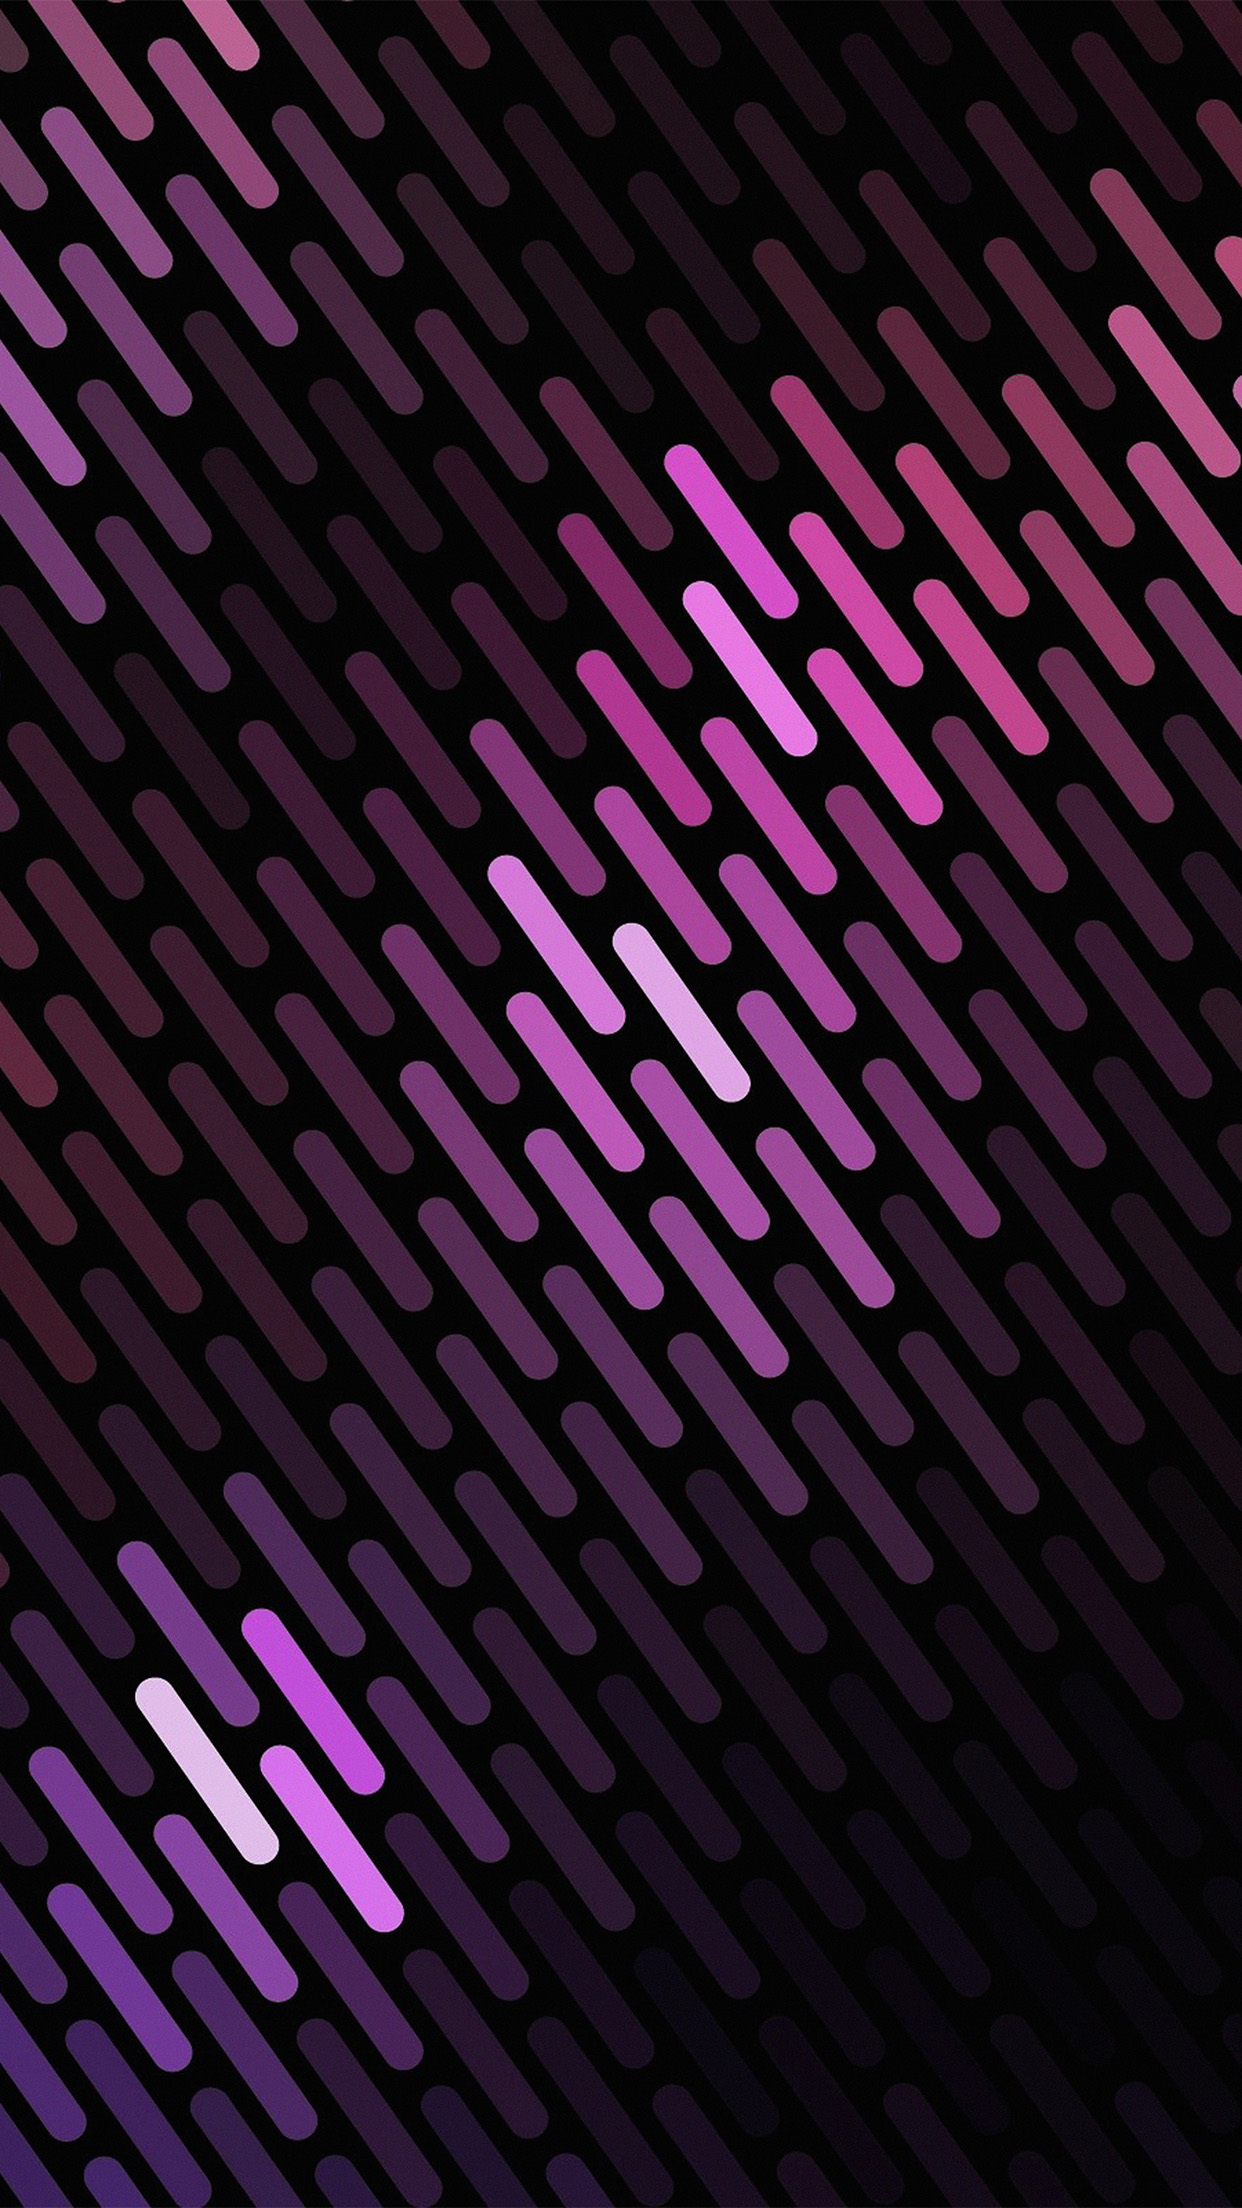 Abstract Pink Purple Dots Lines Pattern Android wallpaper